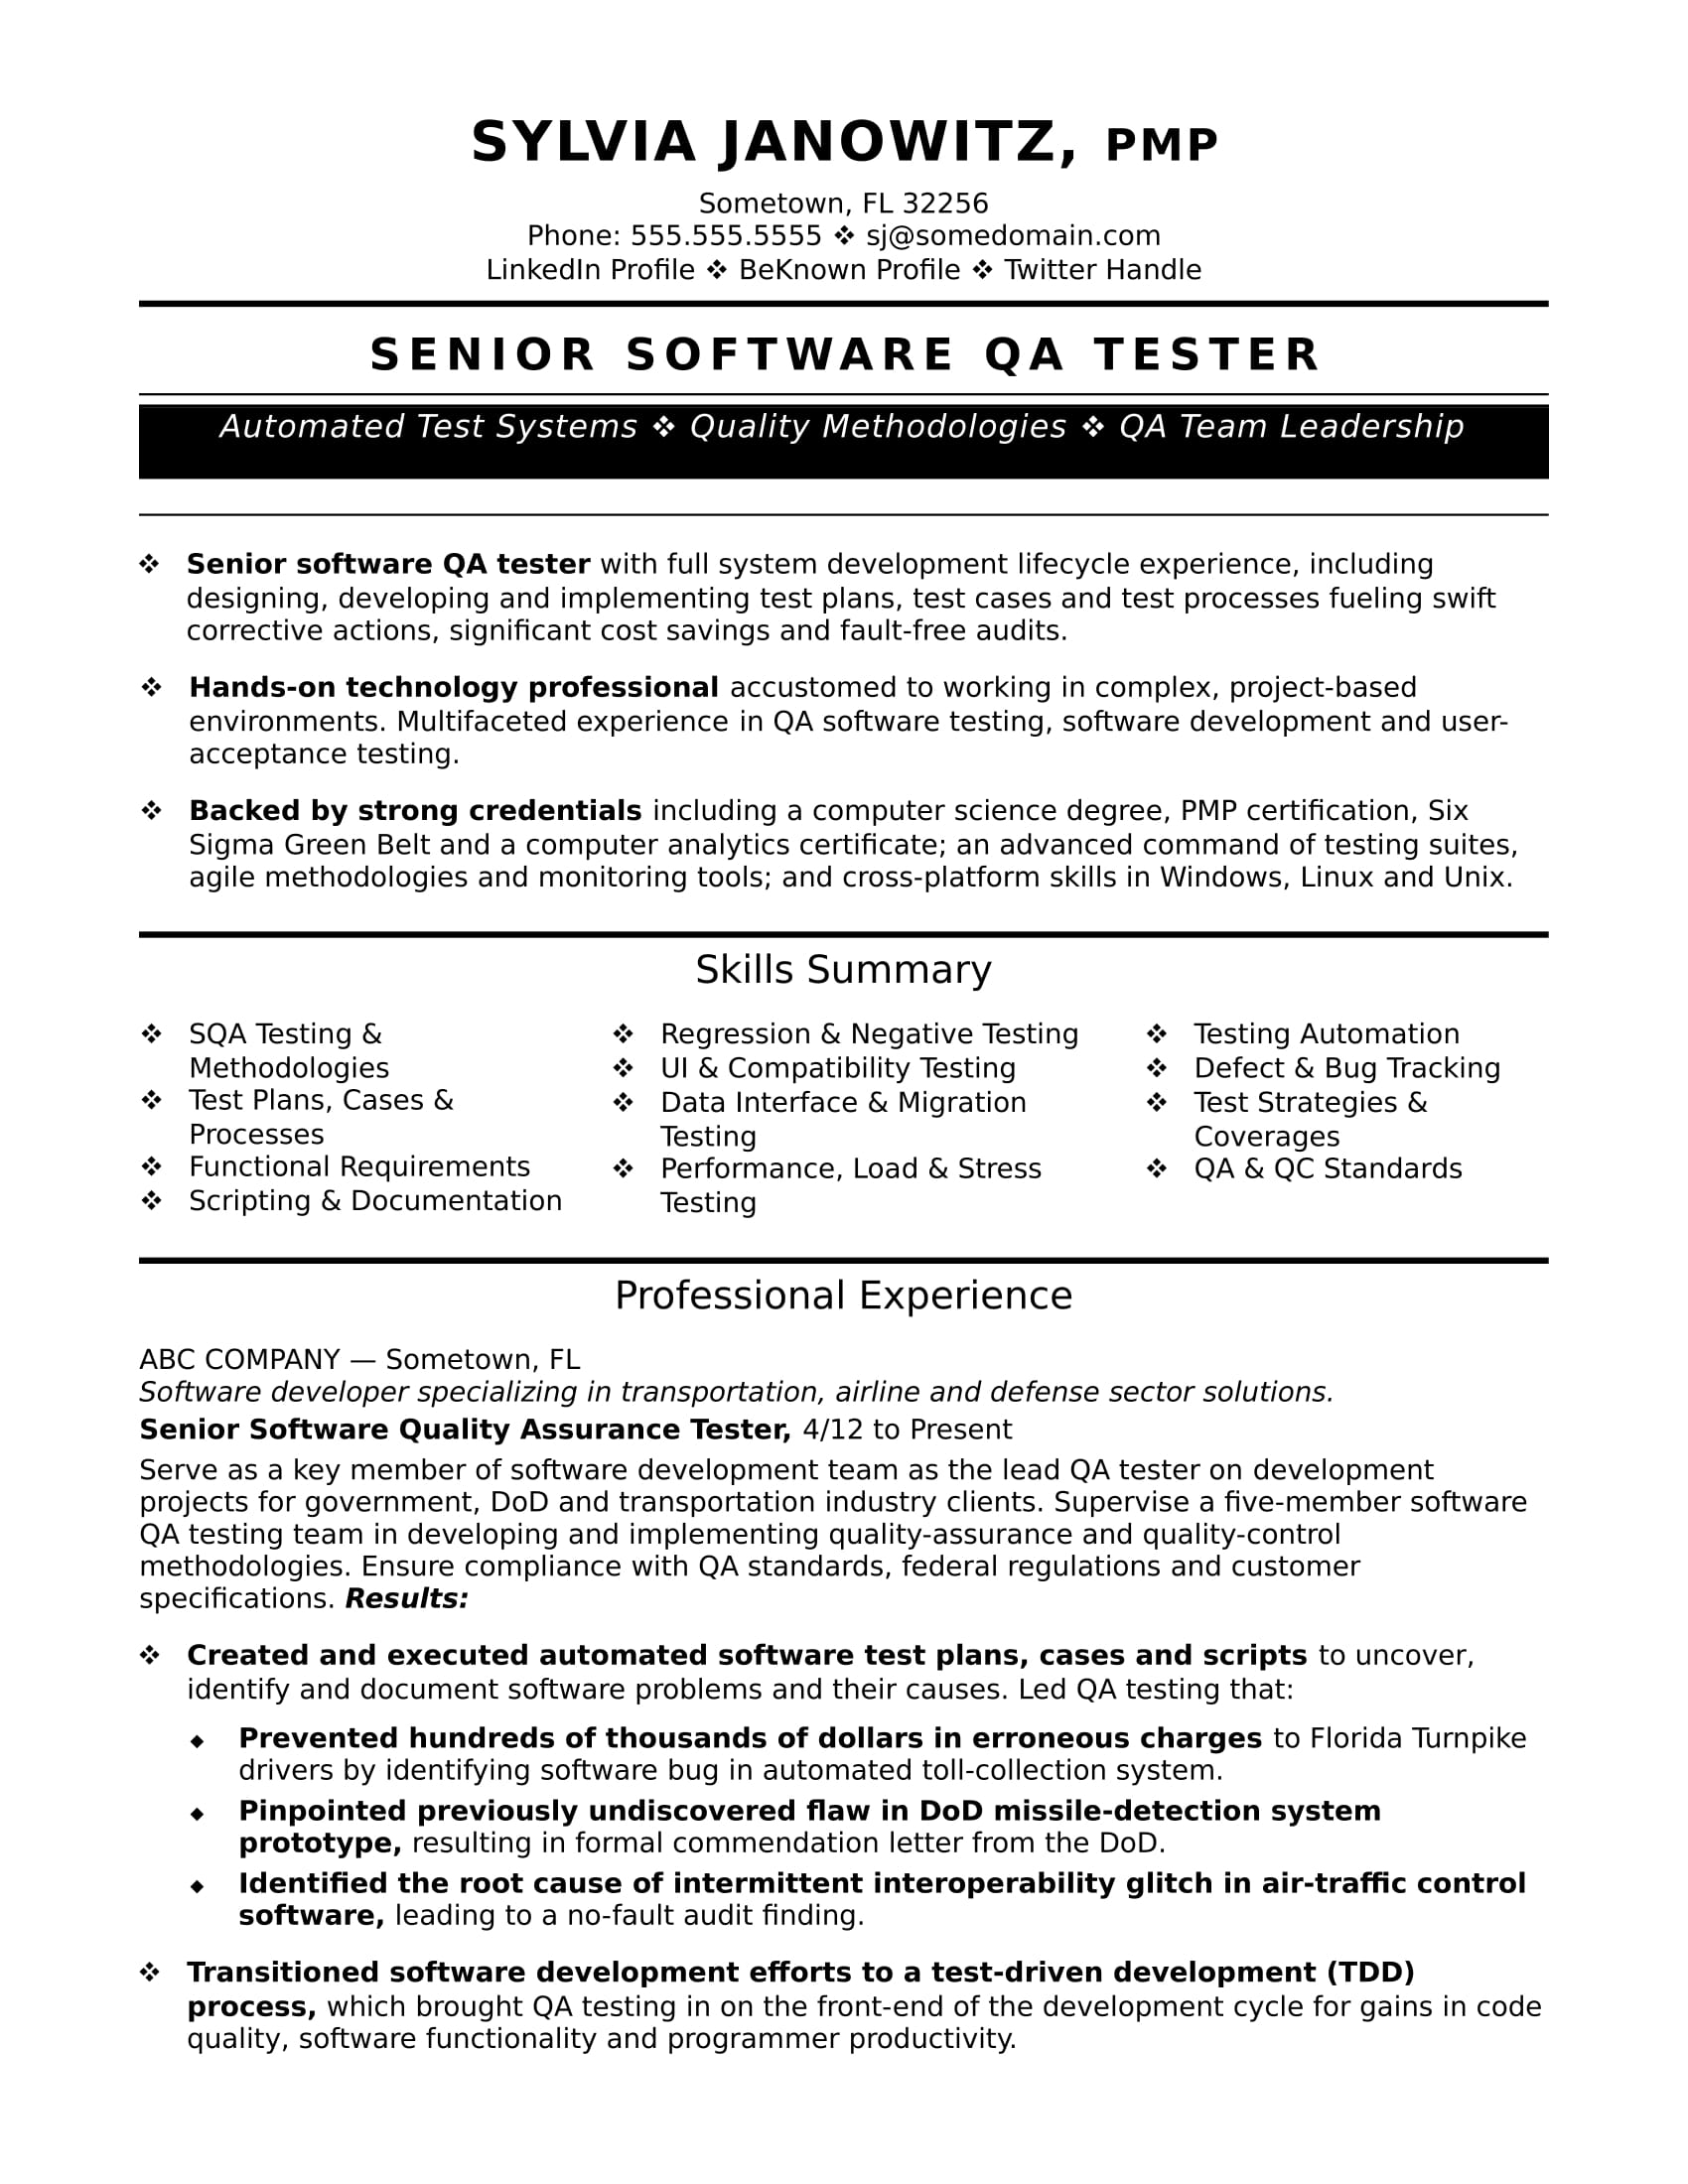 Nice Experienced QA Software Tester Resume Sample For Project Based Resume